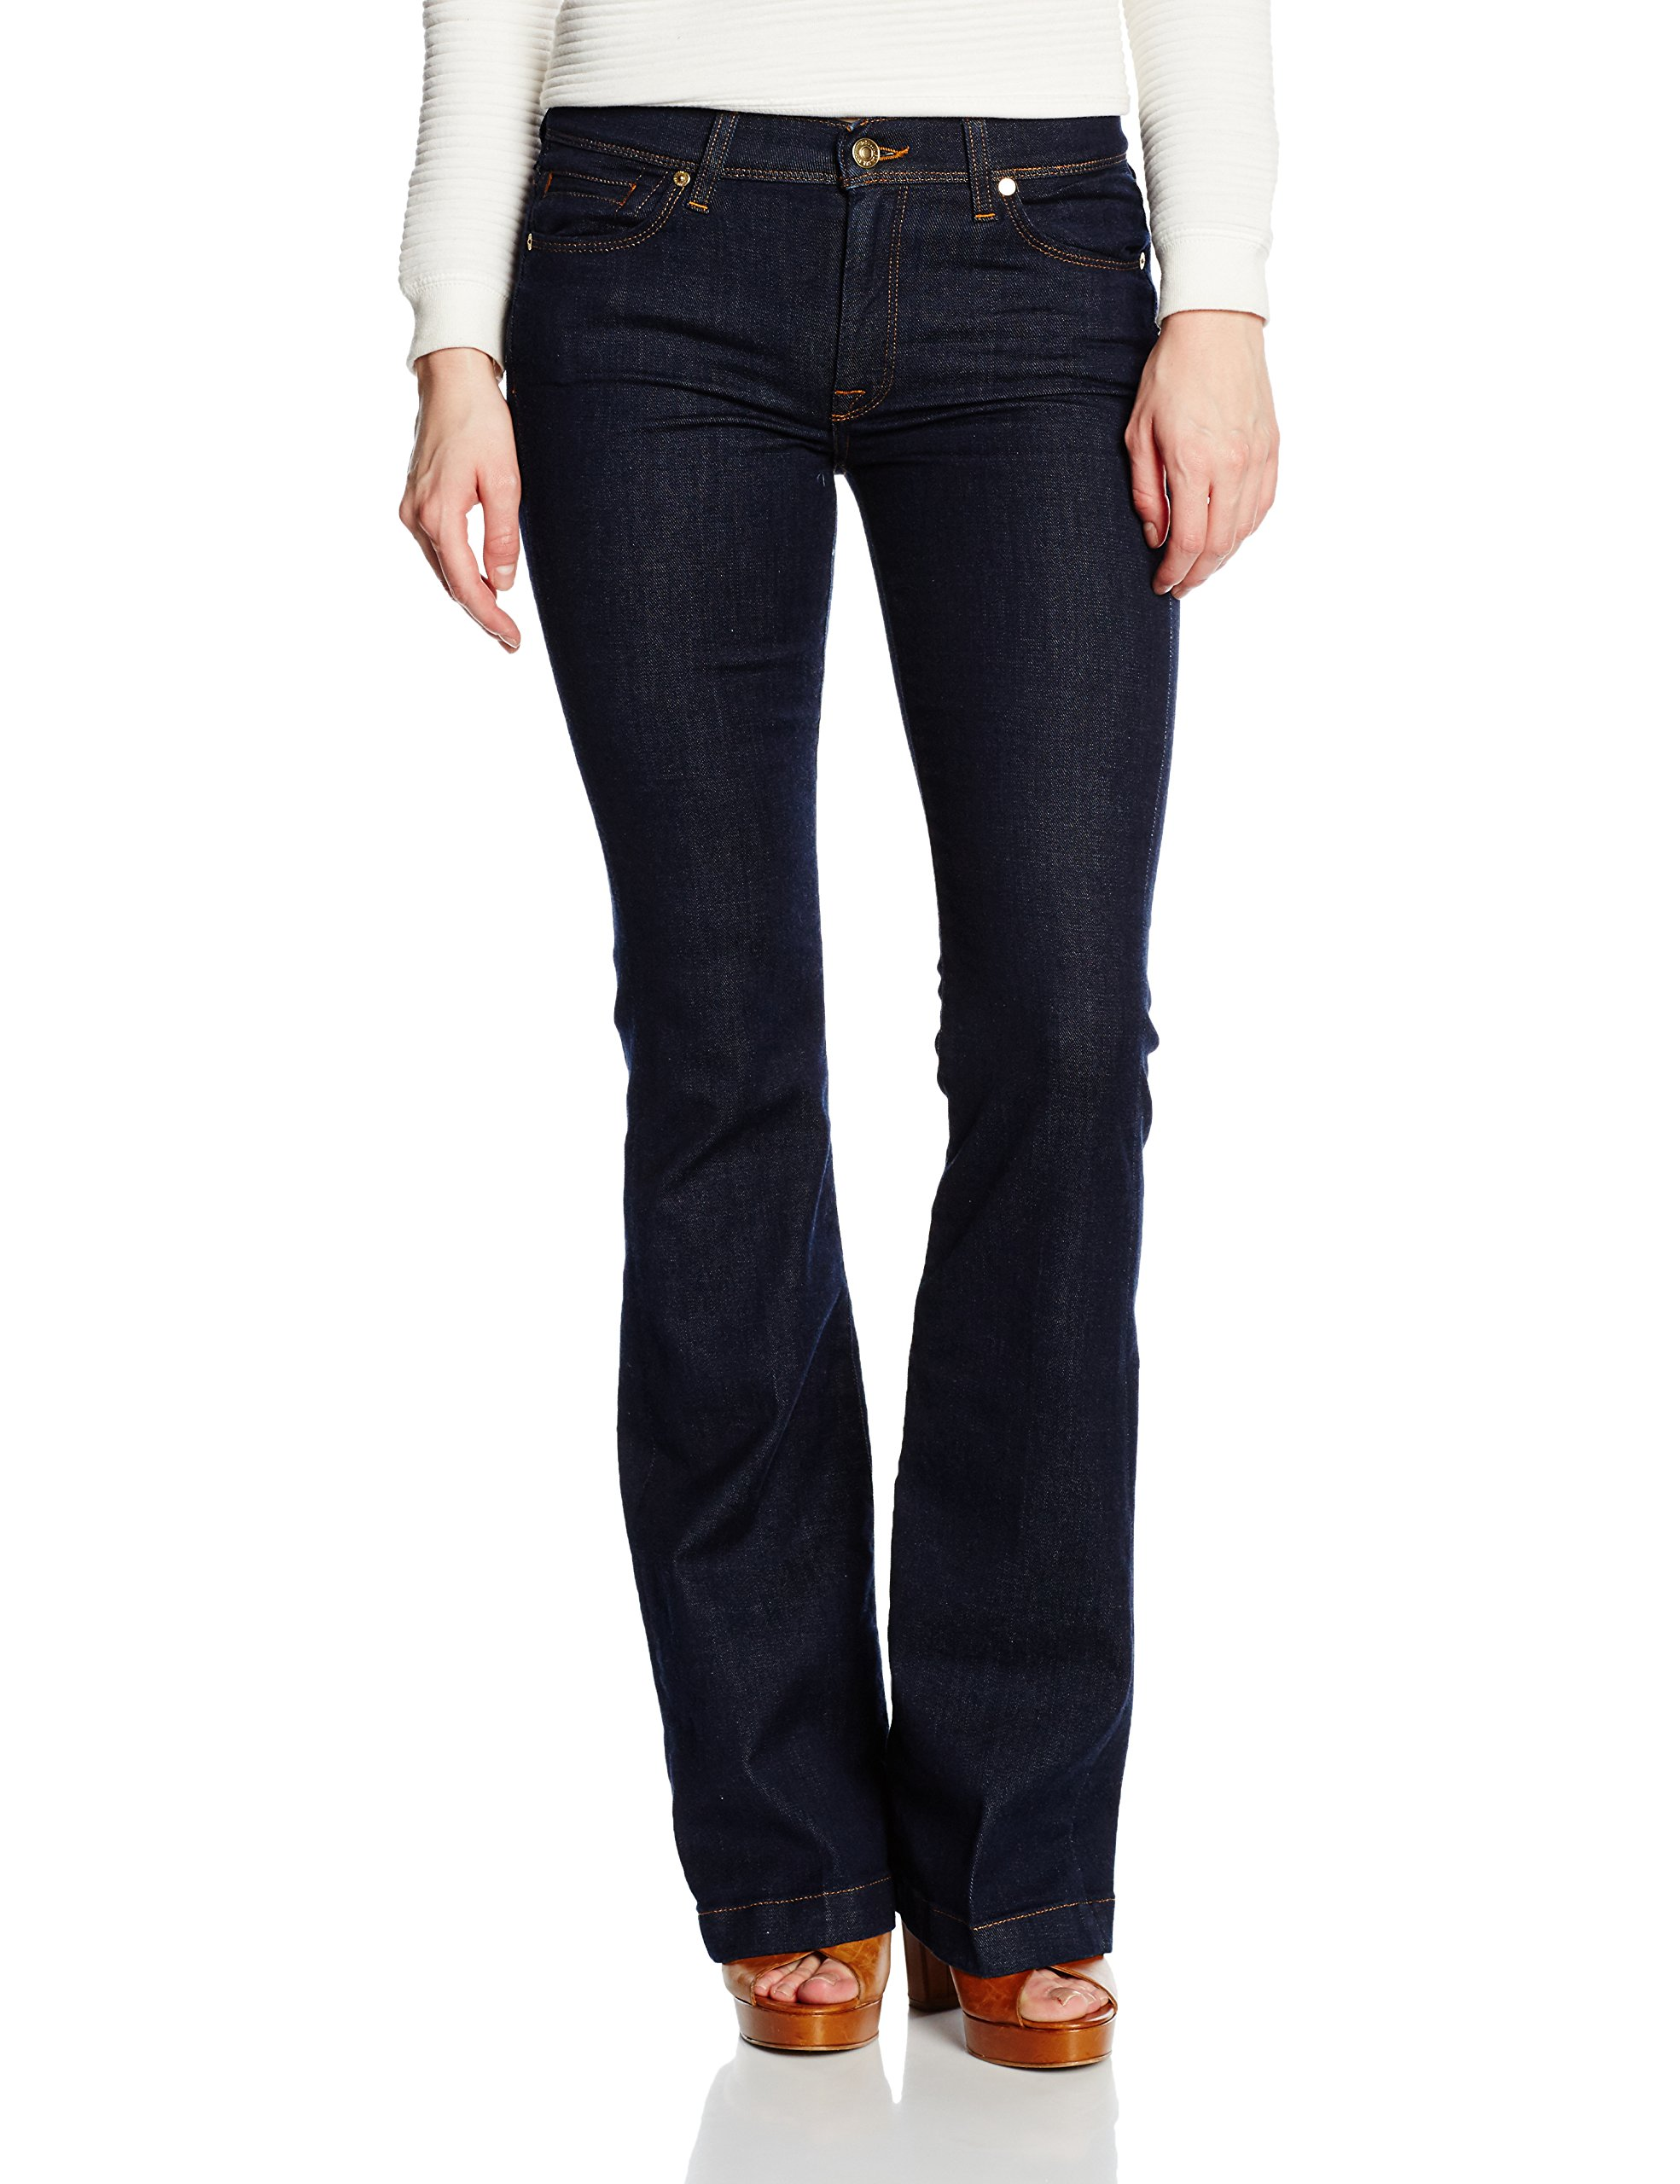 CharlizeJeans aRinsed l35taille All Mankind IndigoW27 Fabricant27 7 FemmeBleul For YI7vm6ygbf